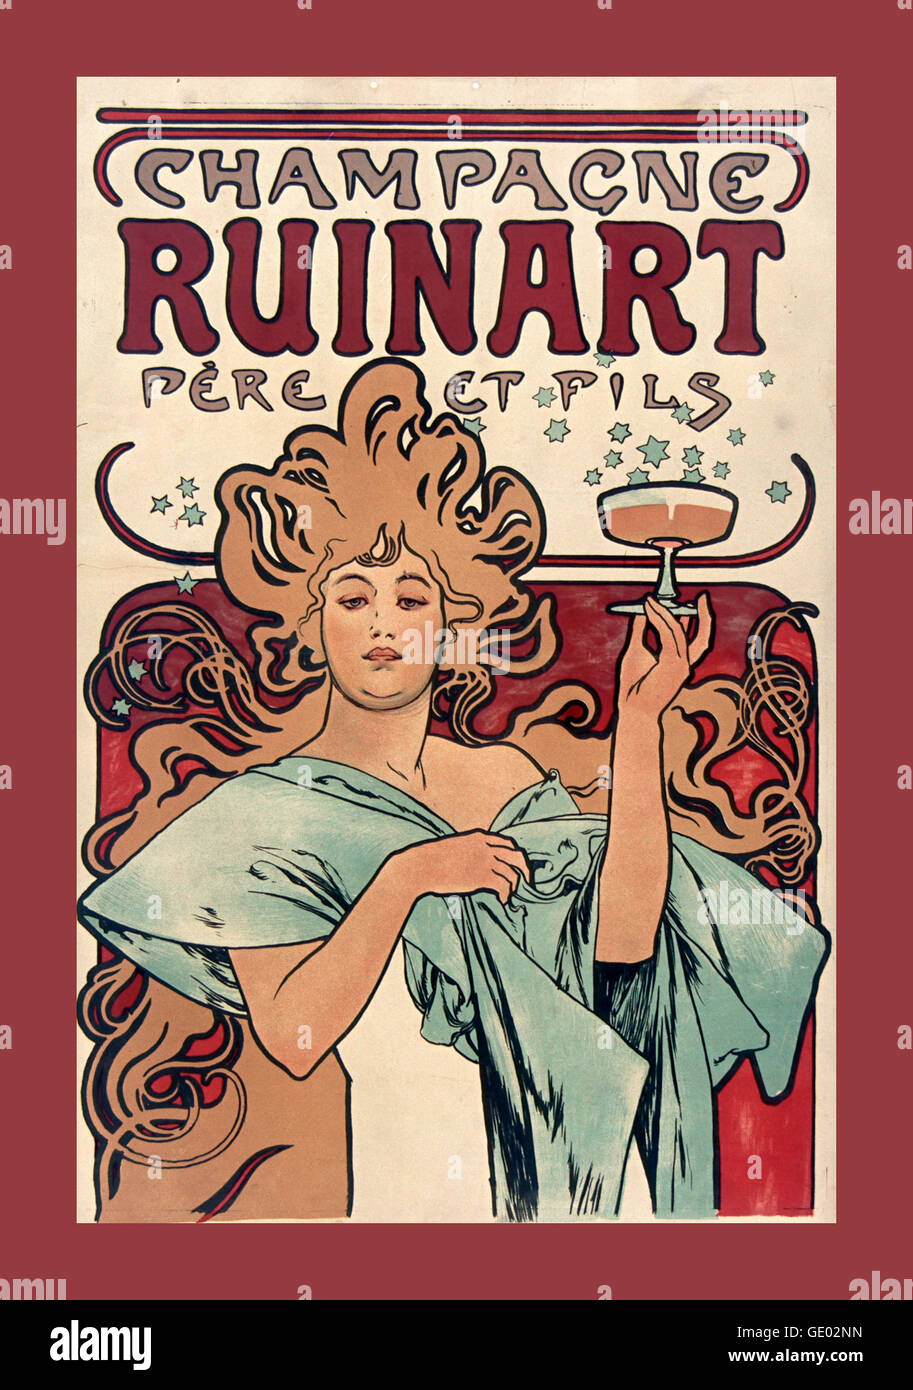 1900s vintage art deco poster featuring ruinart champagne house exclusively producing champagne since 1729 founded by nicolas ruinart in the champagne